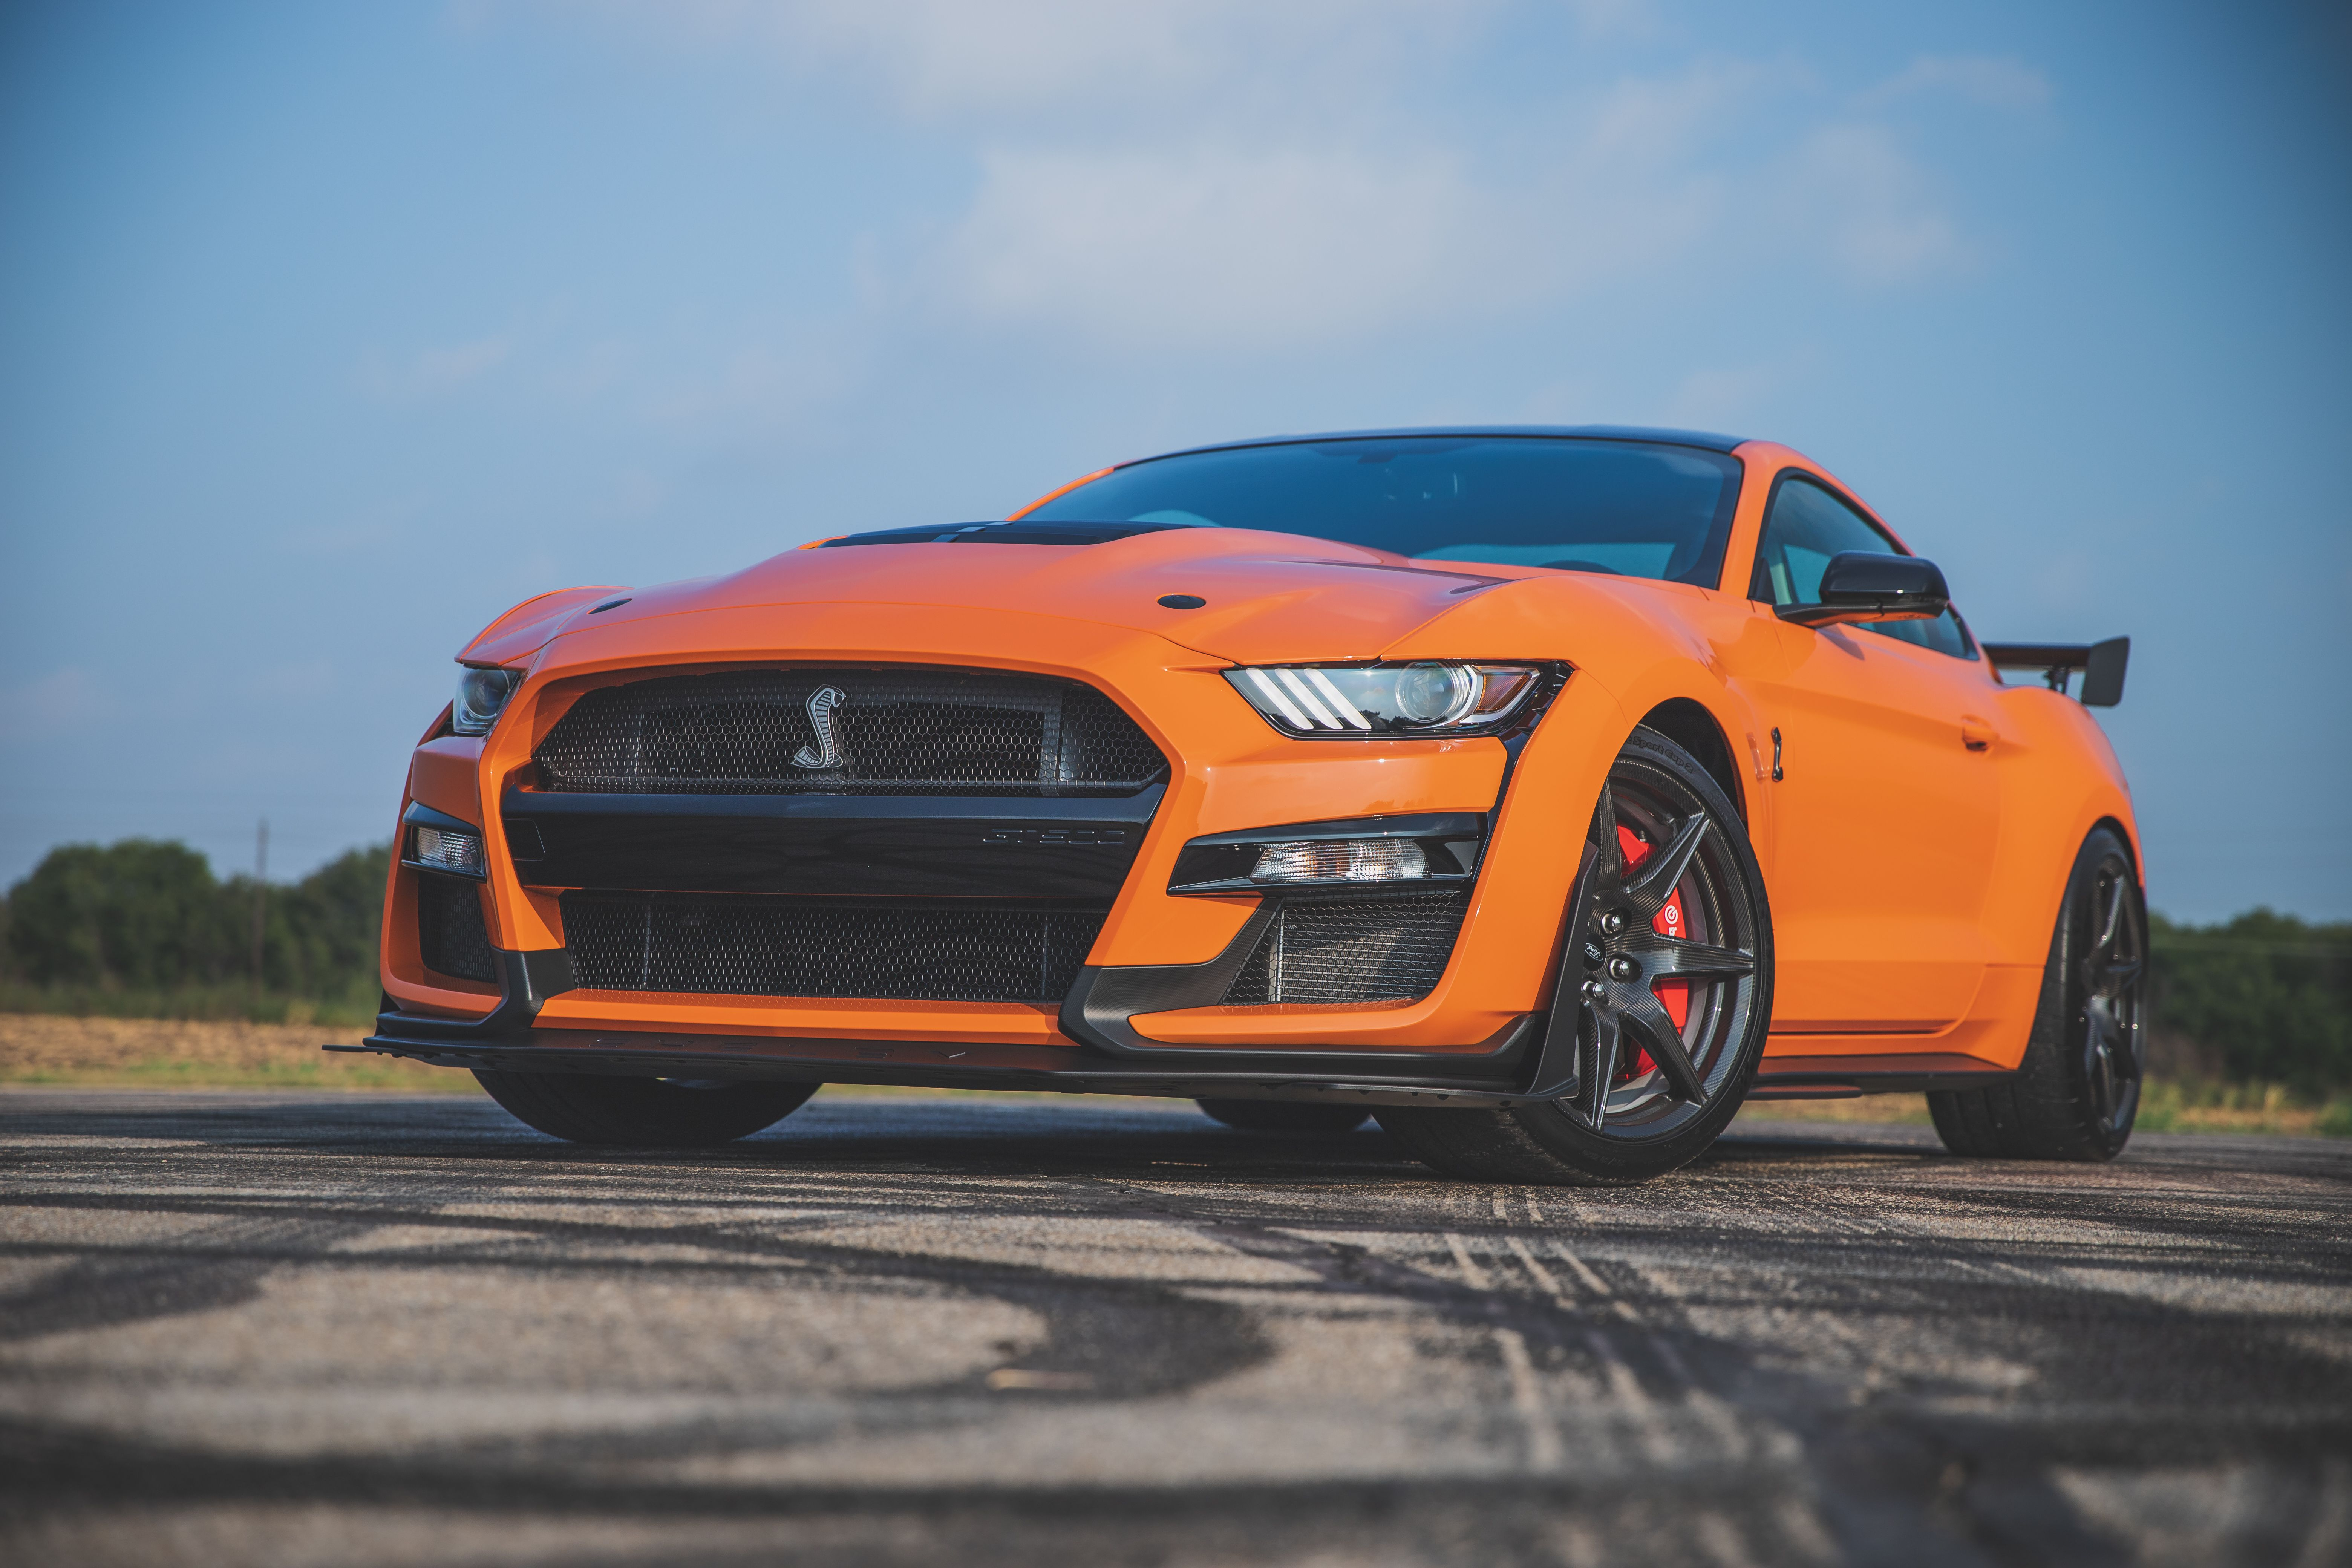 What Is A Carbon Fiber Track Pack? | 2020 GT500 - What Is A Carbon Fiber Track Pack? | 2020 GT500